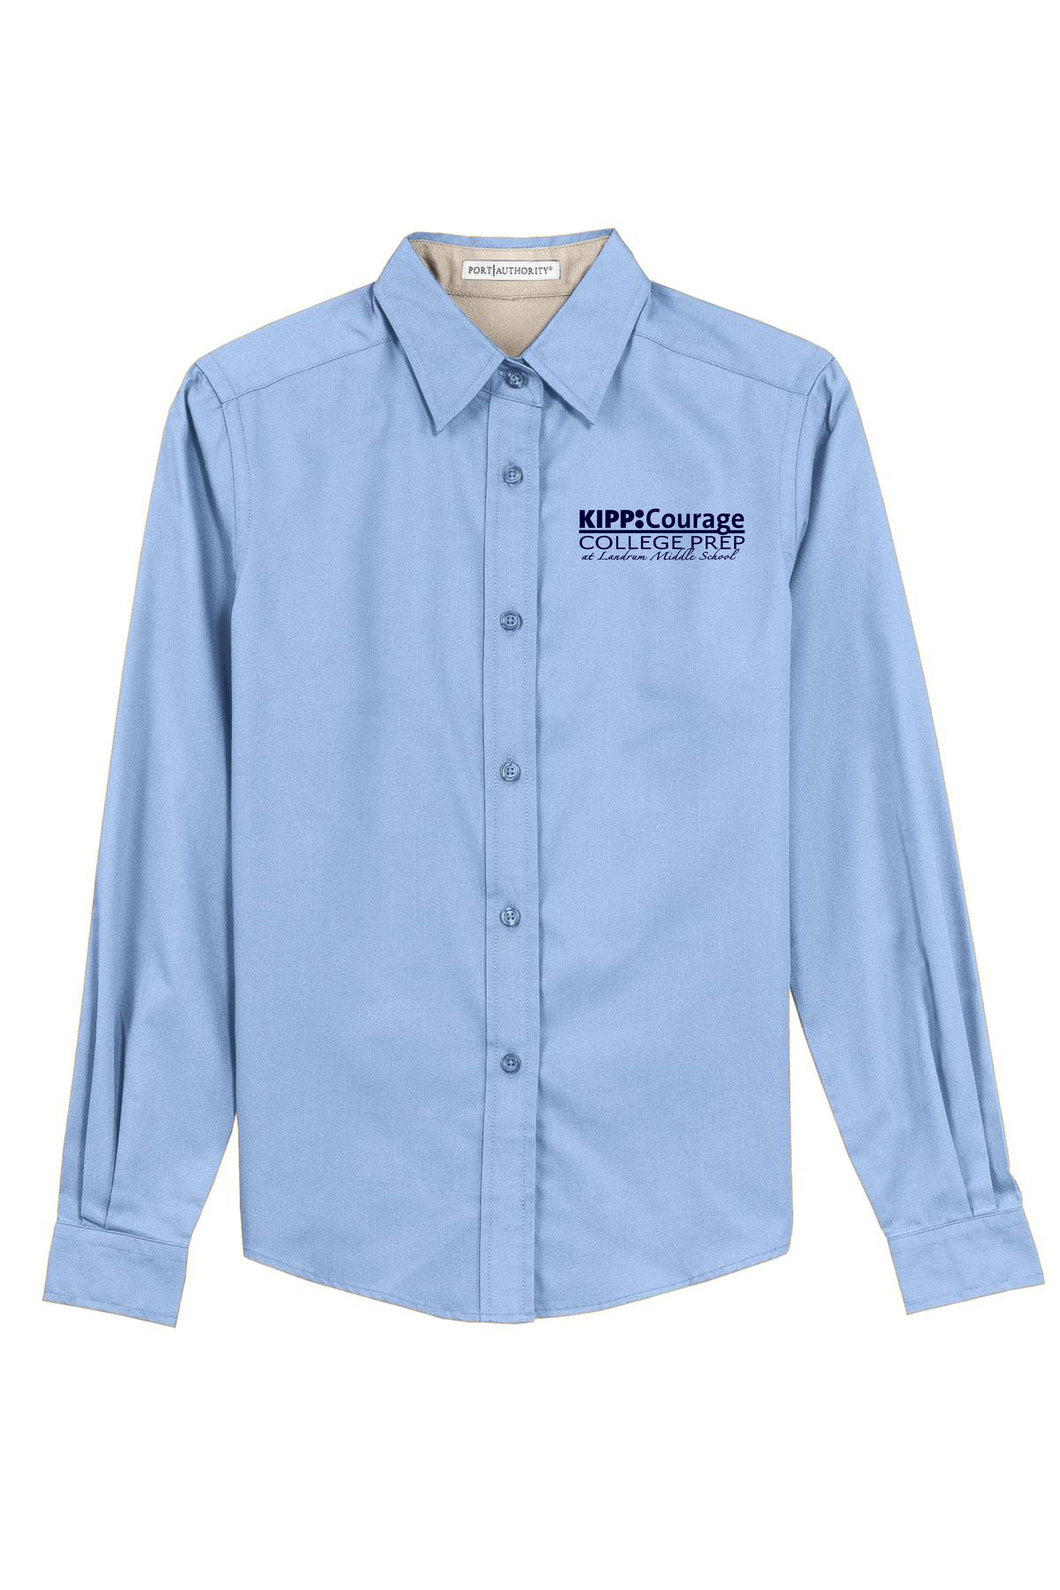 KIPP Courage Ladies Oxford